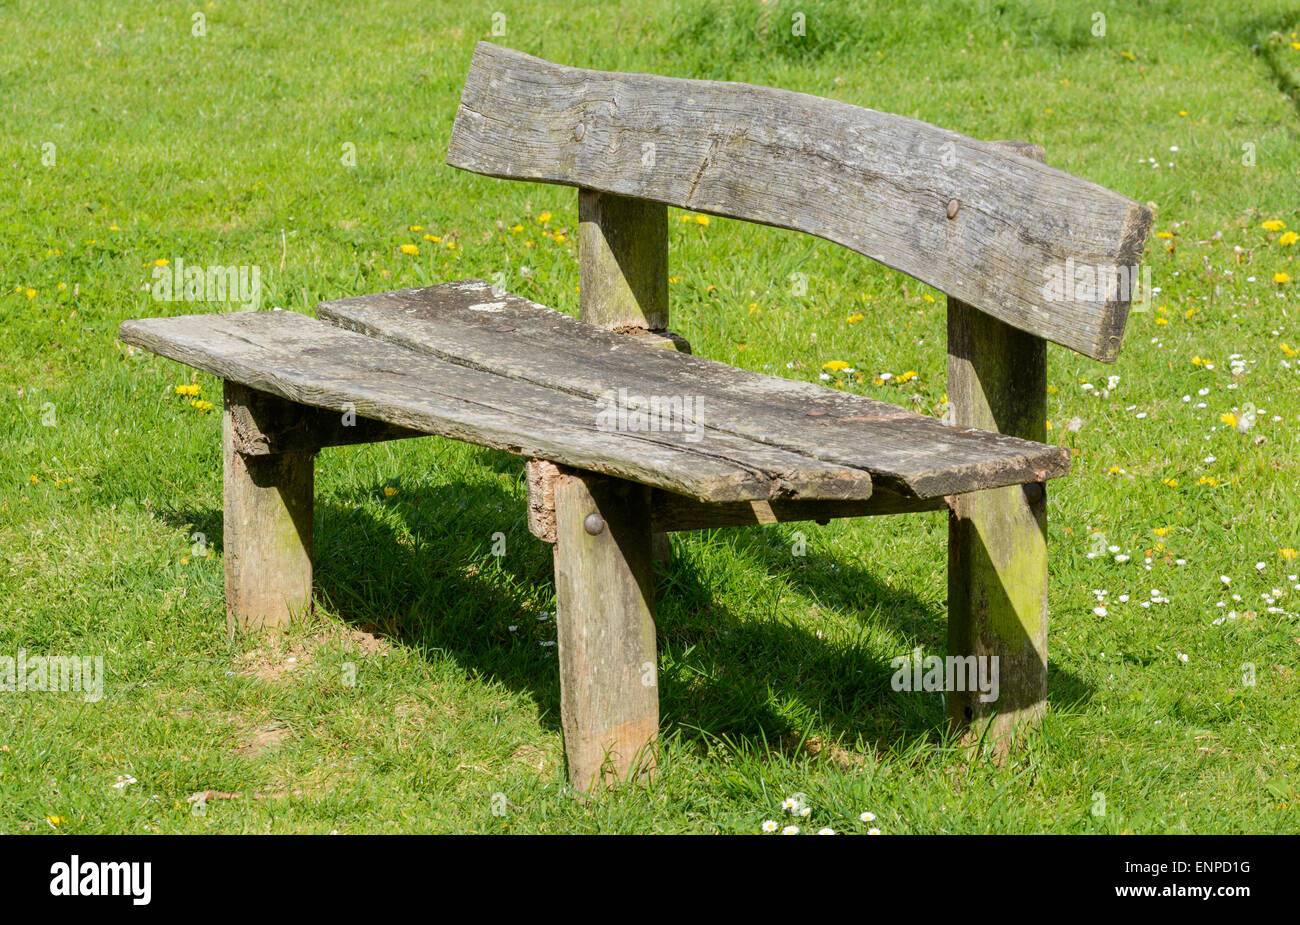 Rustic Wood Bench High Resolution Stock Photography And Images Alamy